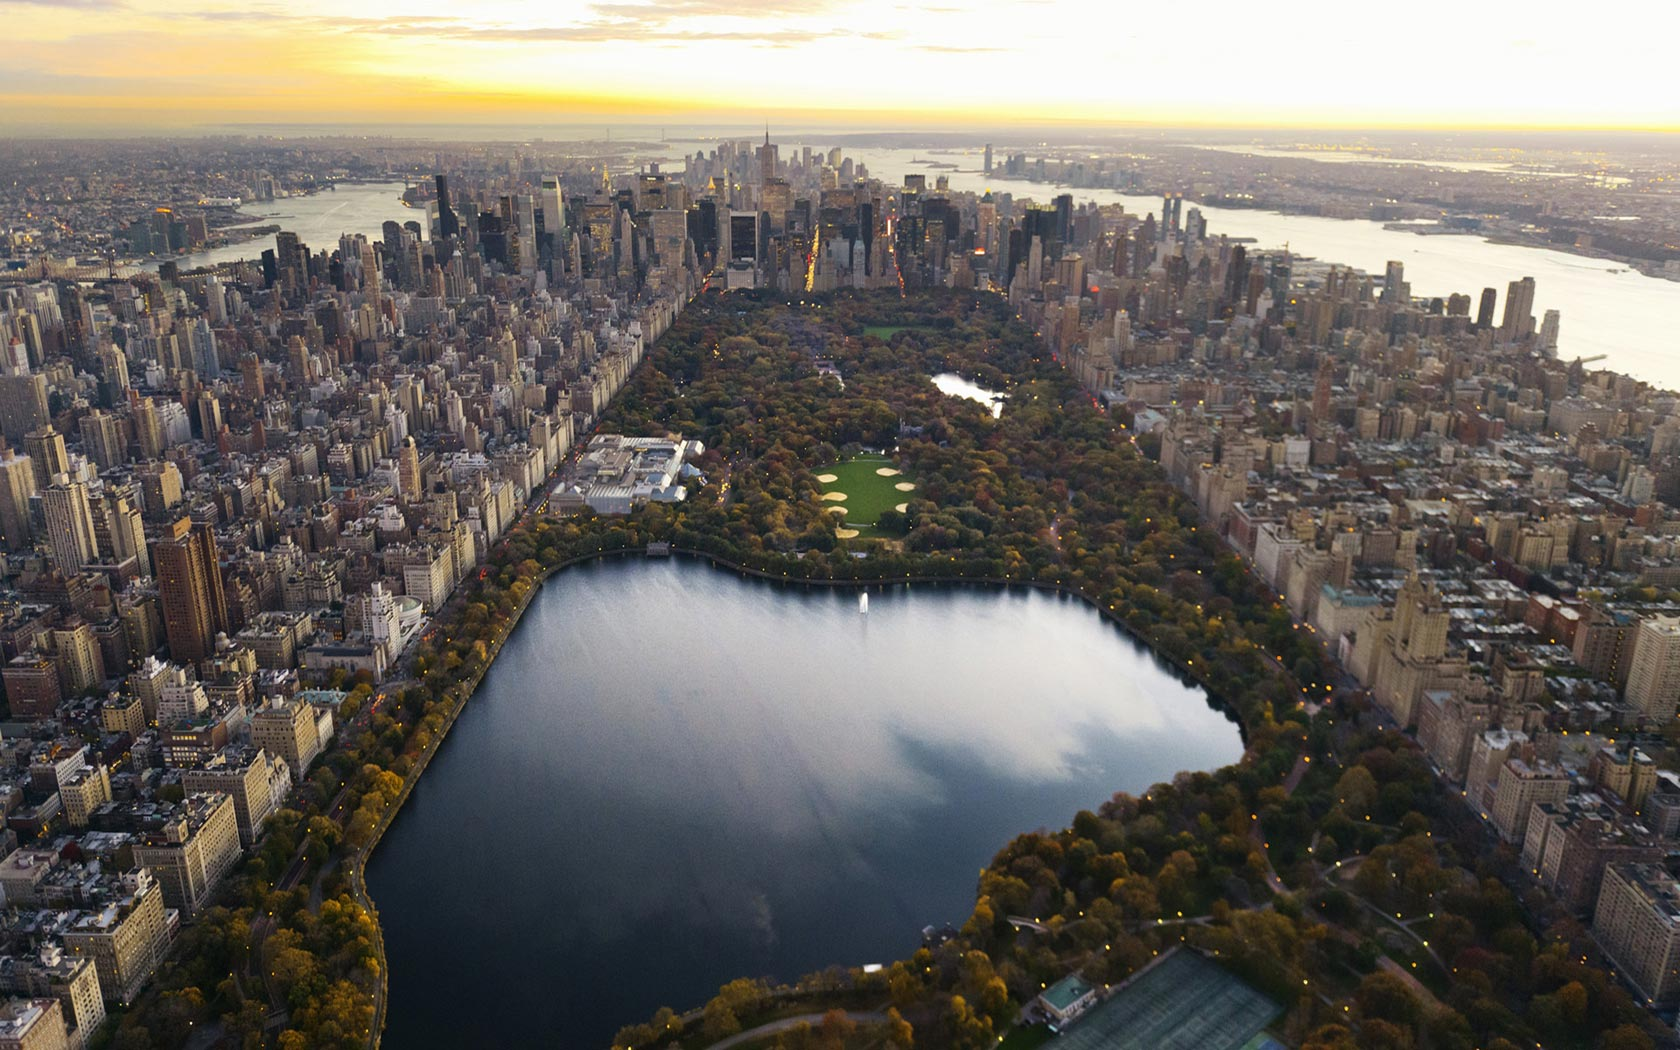 Hd Background Central Park New York City Lake Skyscrapers - New York Central Park 4k - HD Wallpaper